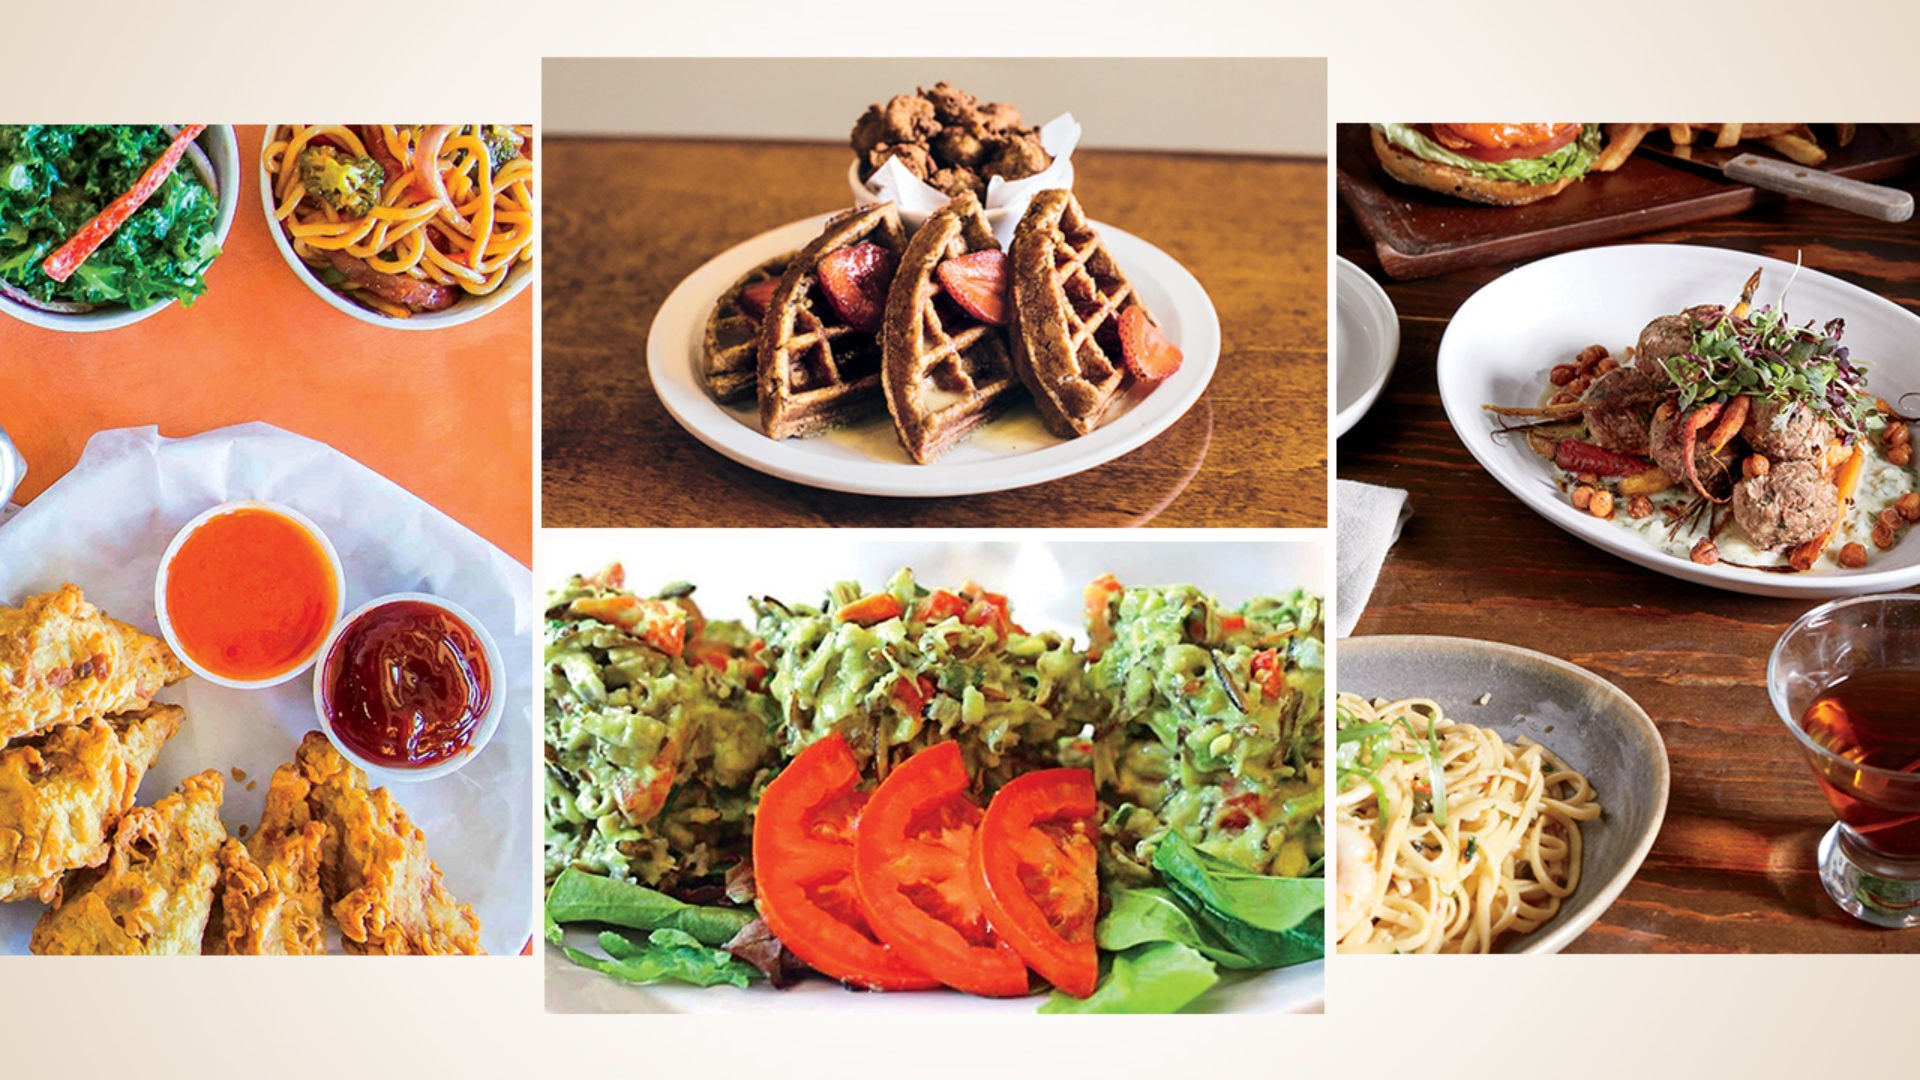 Discover Tasty Vegan Cuisine At These